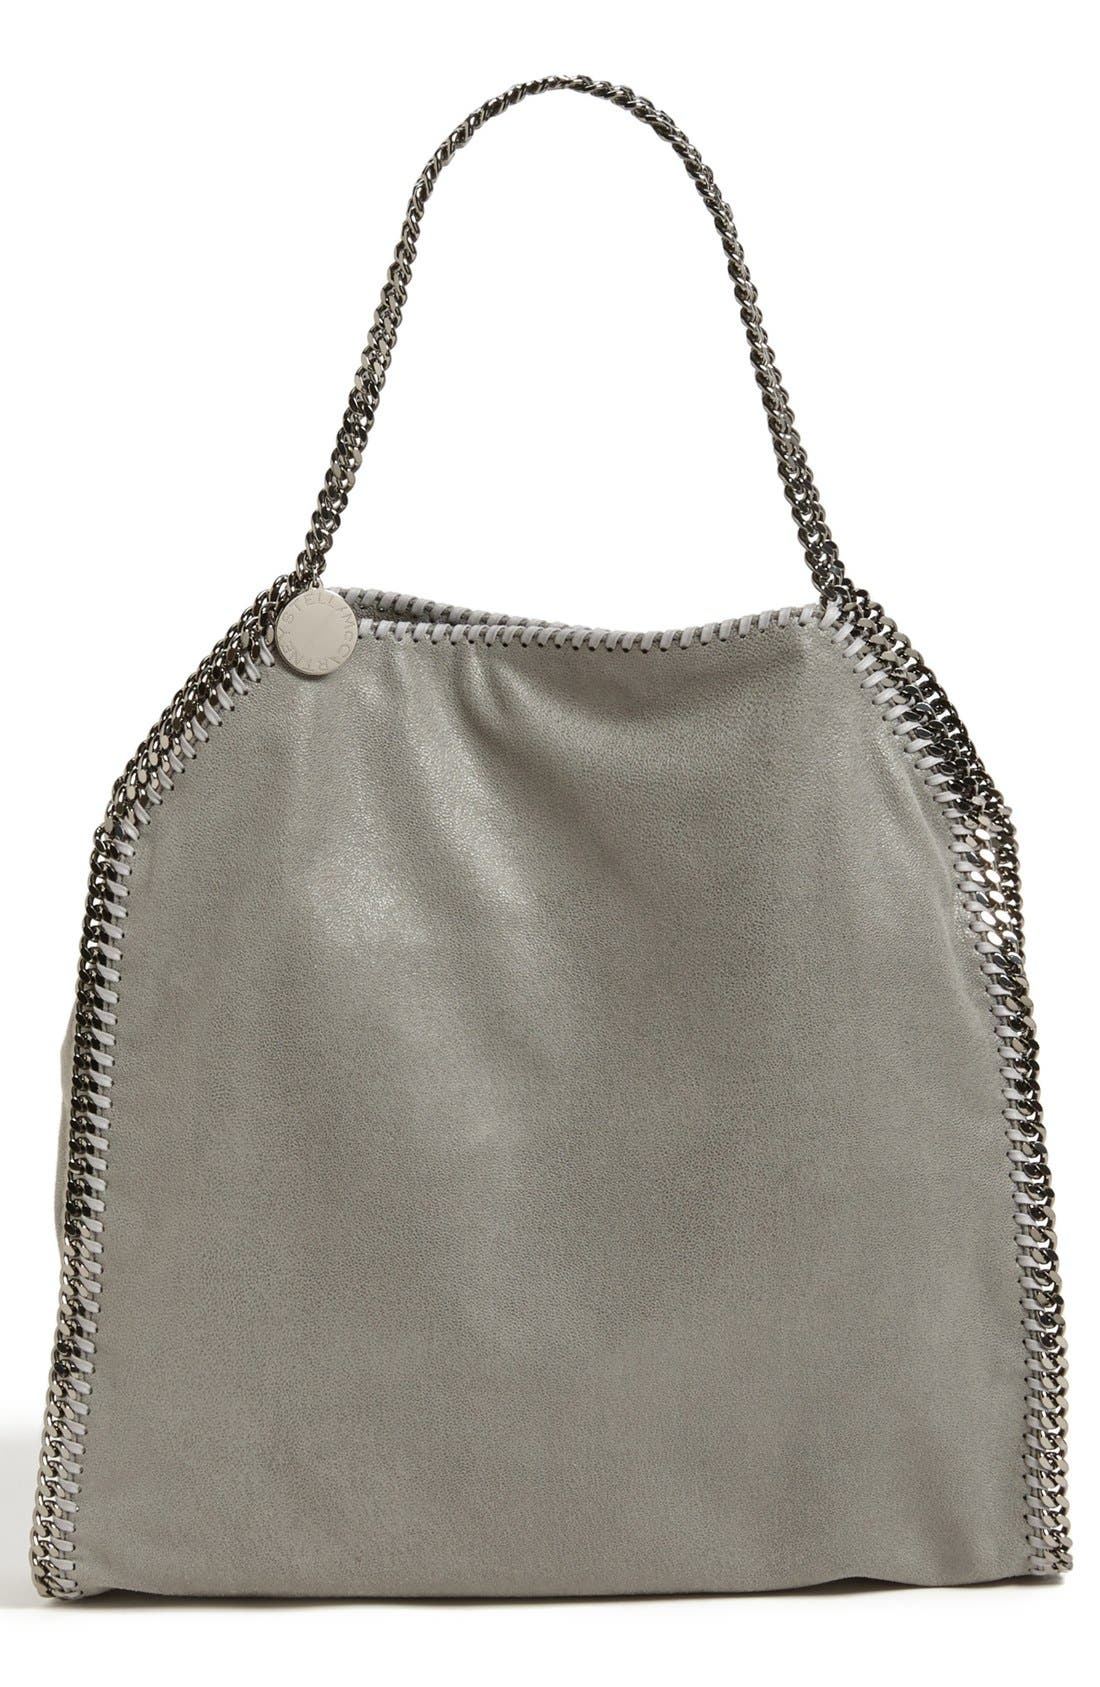 'Large Falabella - Shaggy Deer' Faux Leather Tote,                             Main thumbnail 1, color,                             Lt.Grey